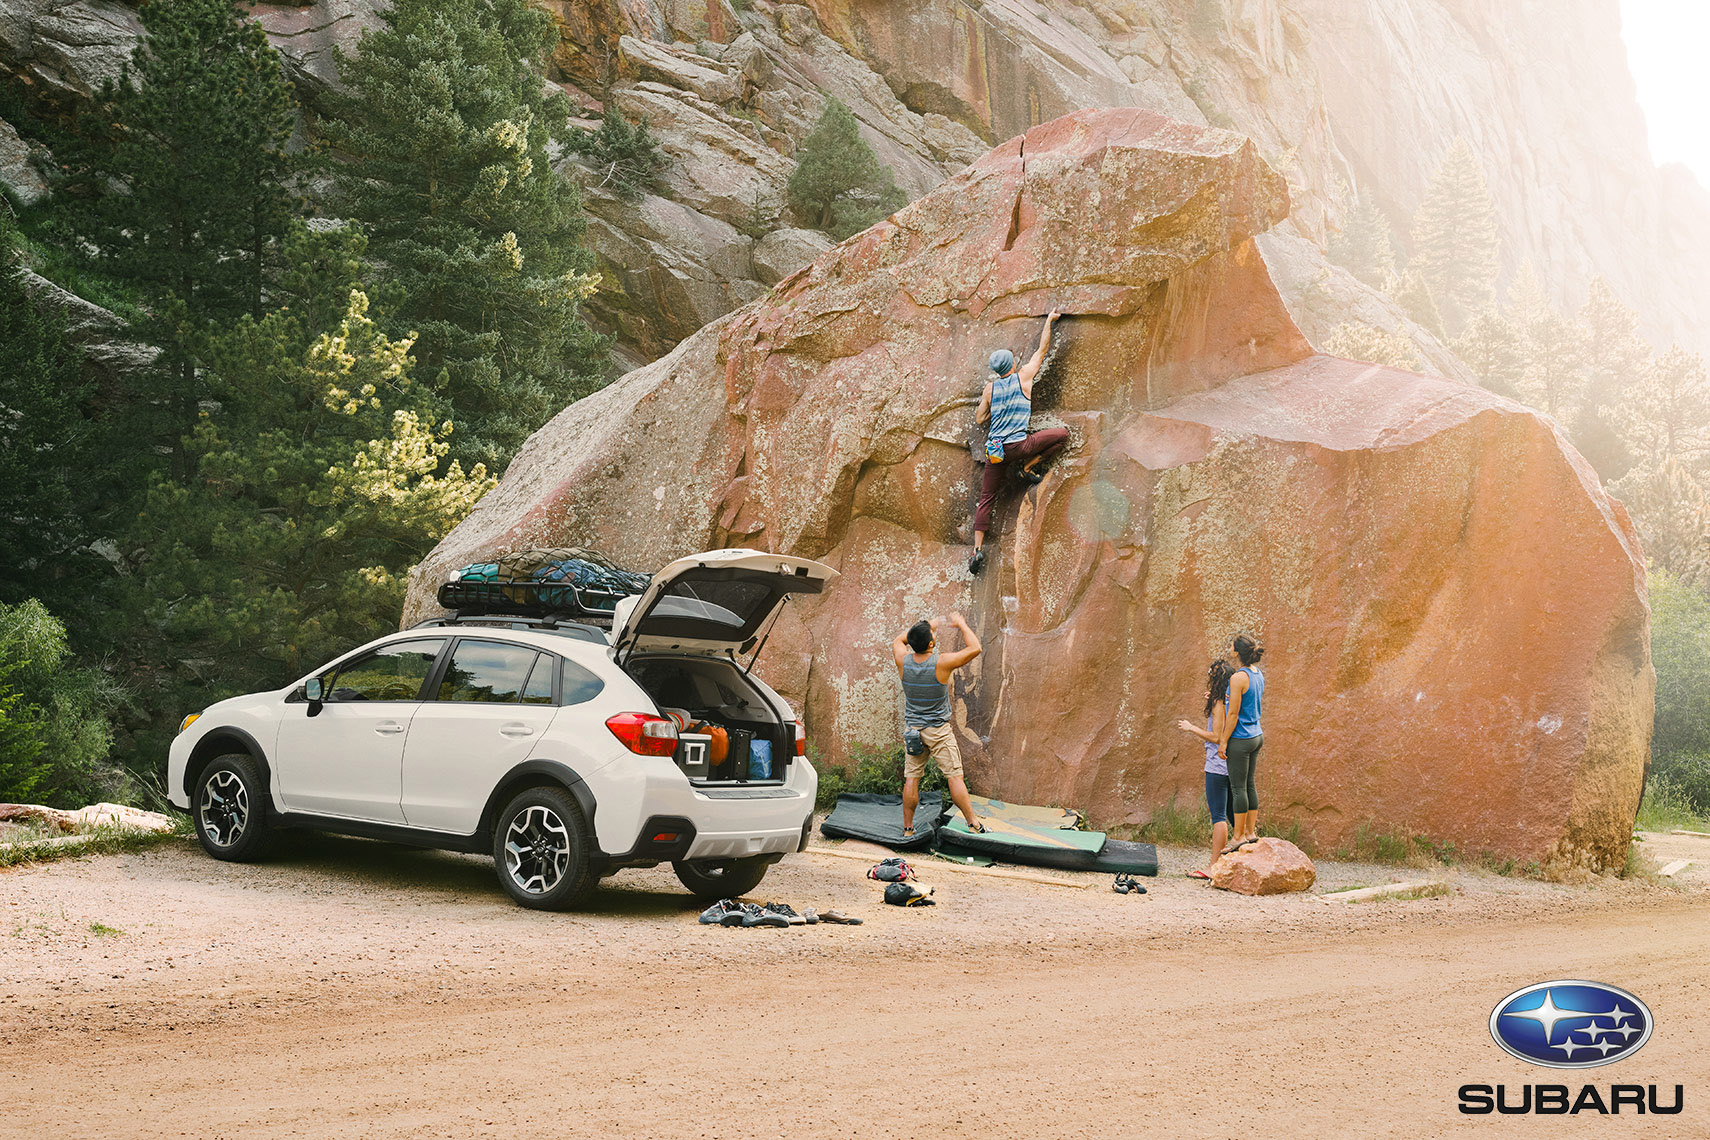 SUBARU // COLORADO AND WYOMING // DESIGNORY + TERRY PRINE // PHOTO BRIAN KONOSKE // HMU + WARDROBE + PROPS + TALENT MANAGEMENT